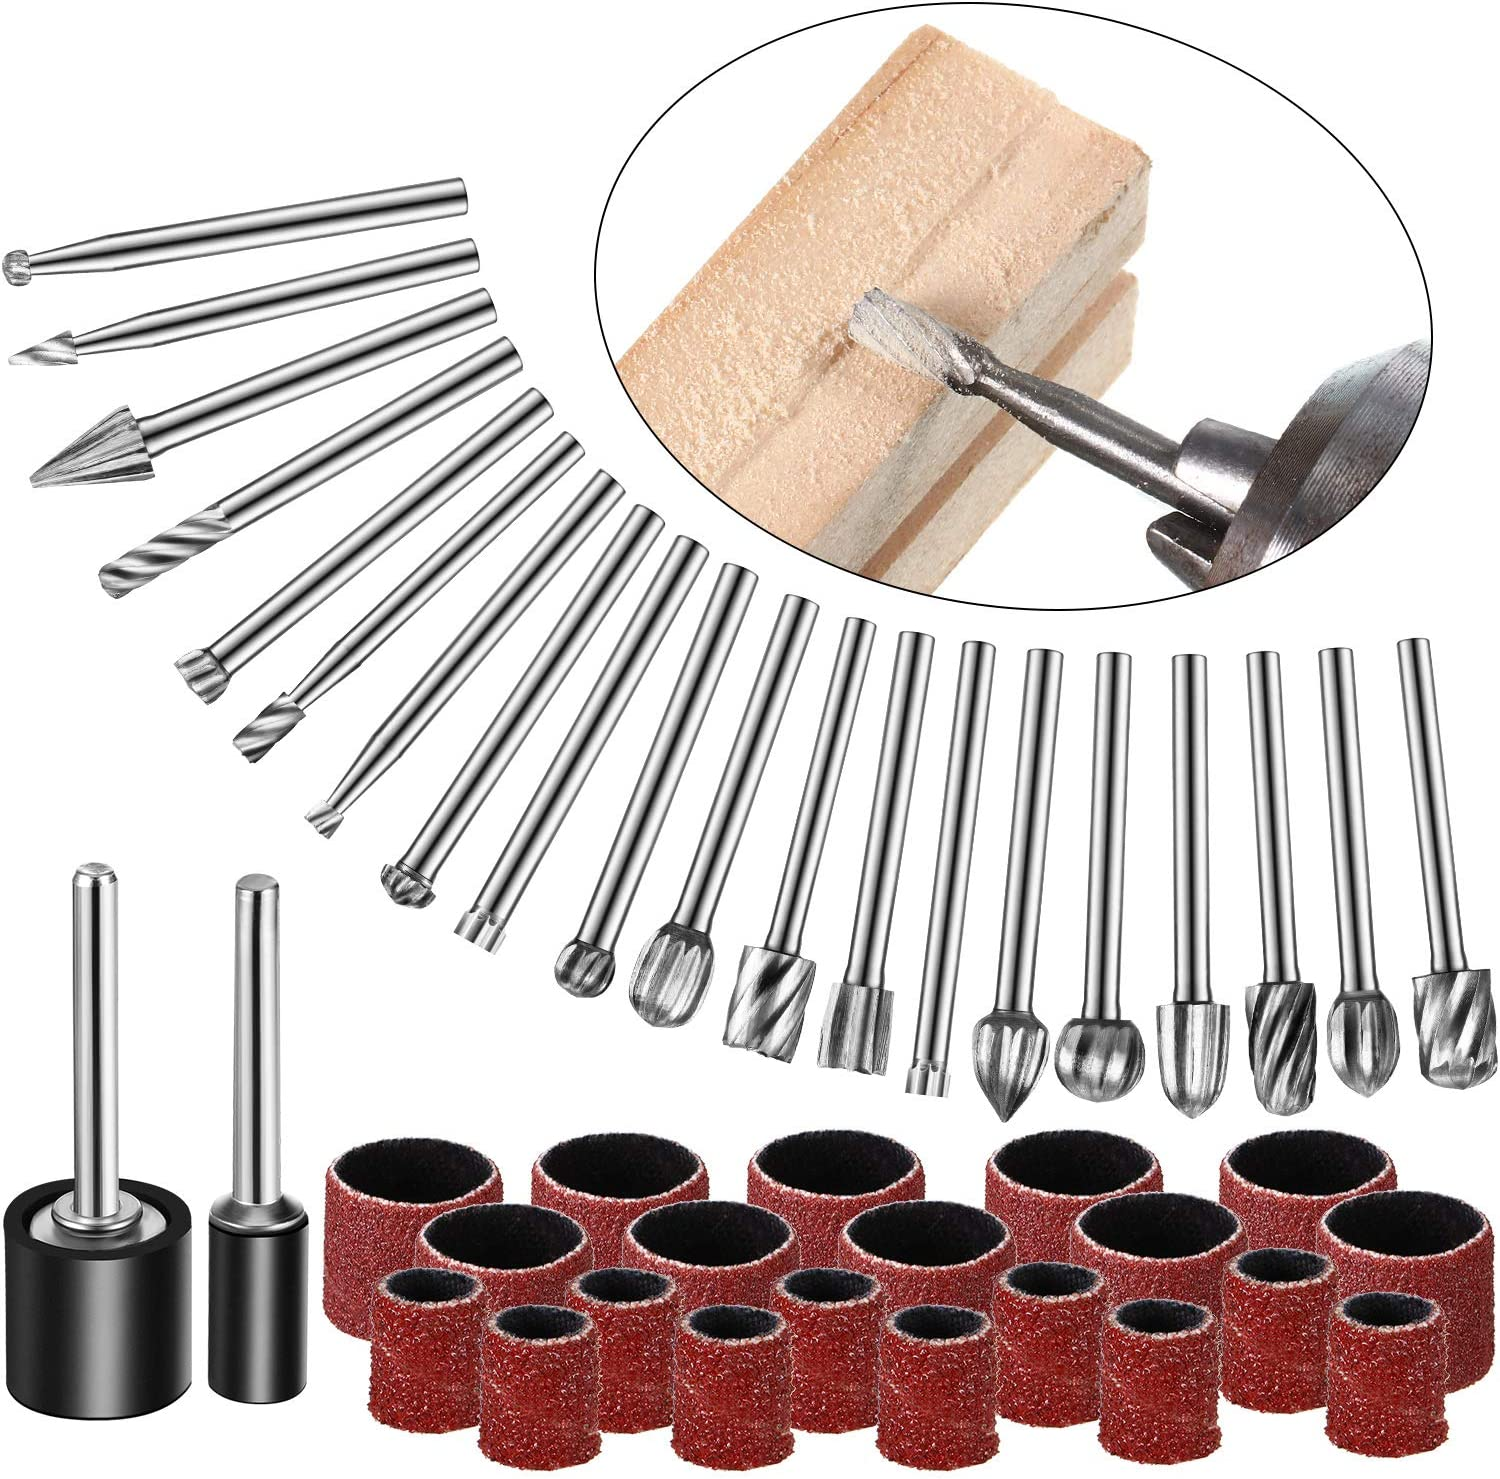 20 Pieces Tungsten Carbide Rotary Burr Set 1/8 Shank HSS Rotary Bit Burrs Set and 22 Pieces Sanding Drums Kit for Drum Sander, Carbide Router Bit Set for DIY Woodworking, Carving, Engraving, Drilling